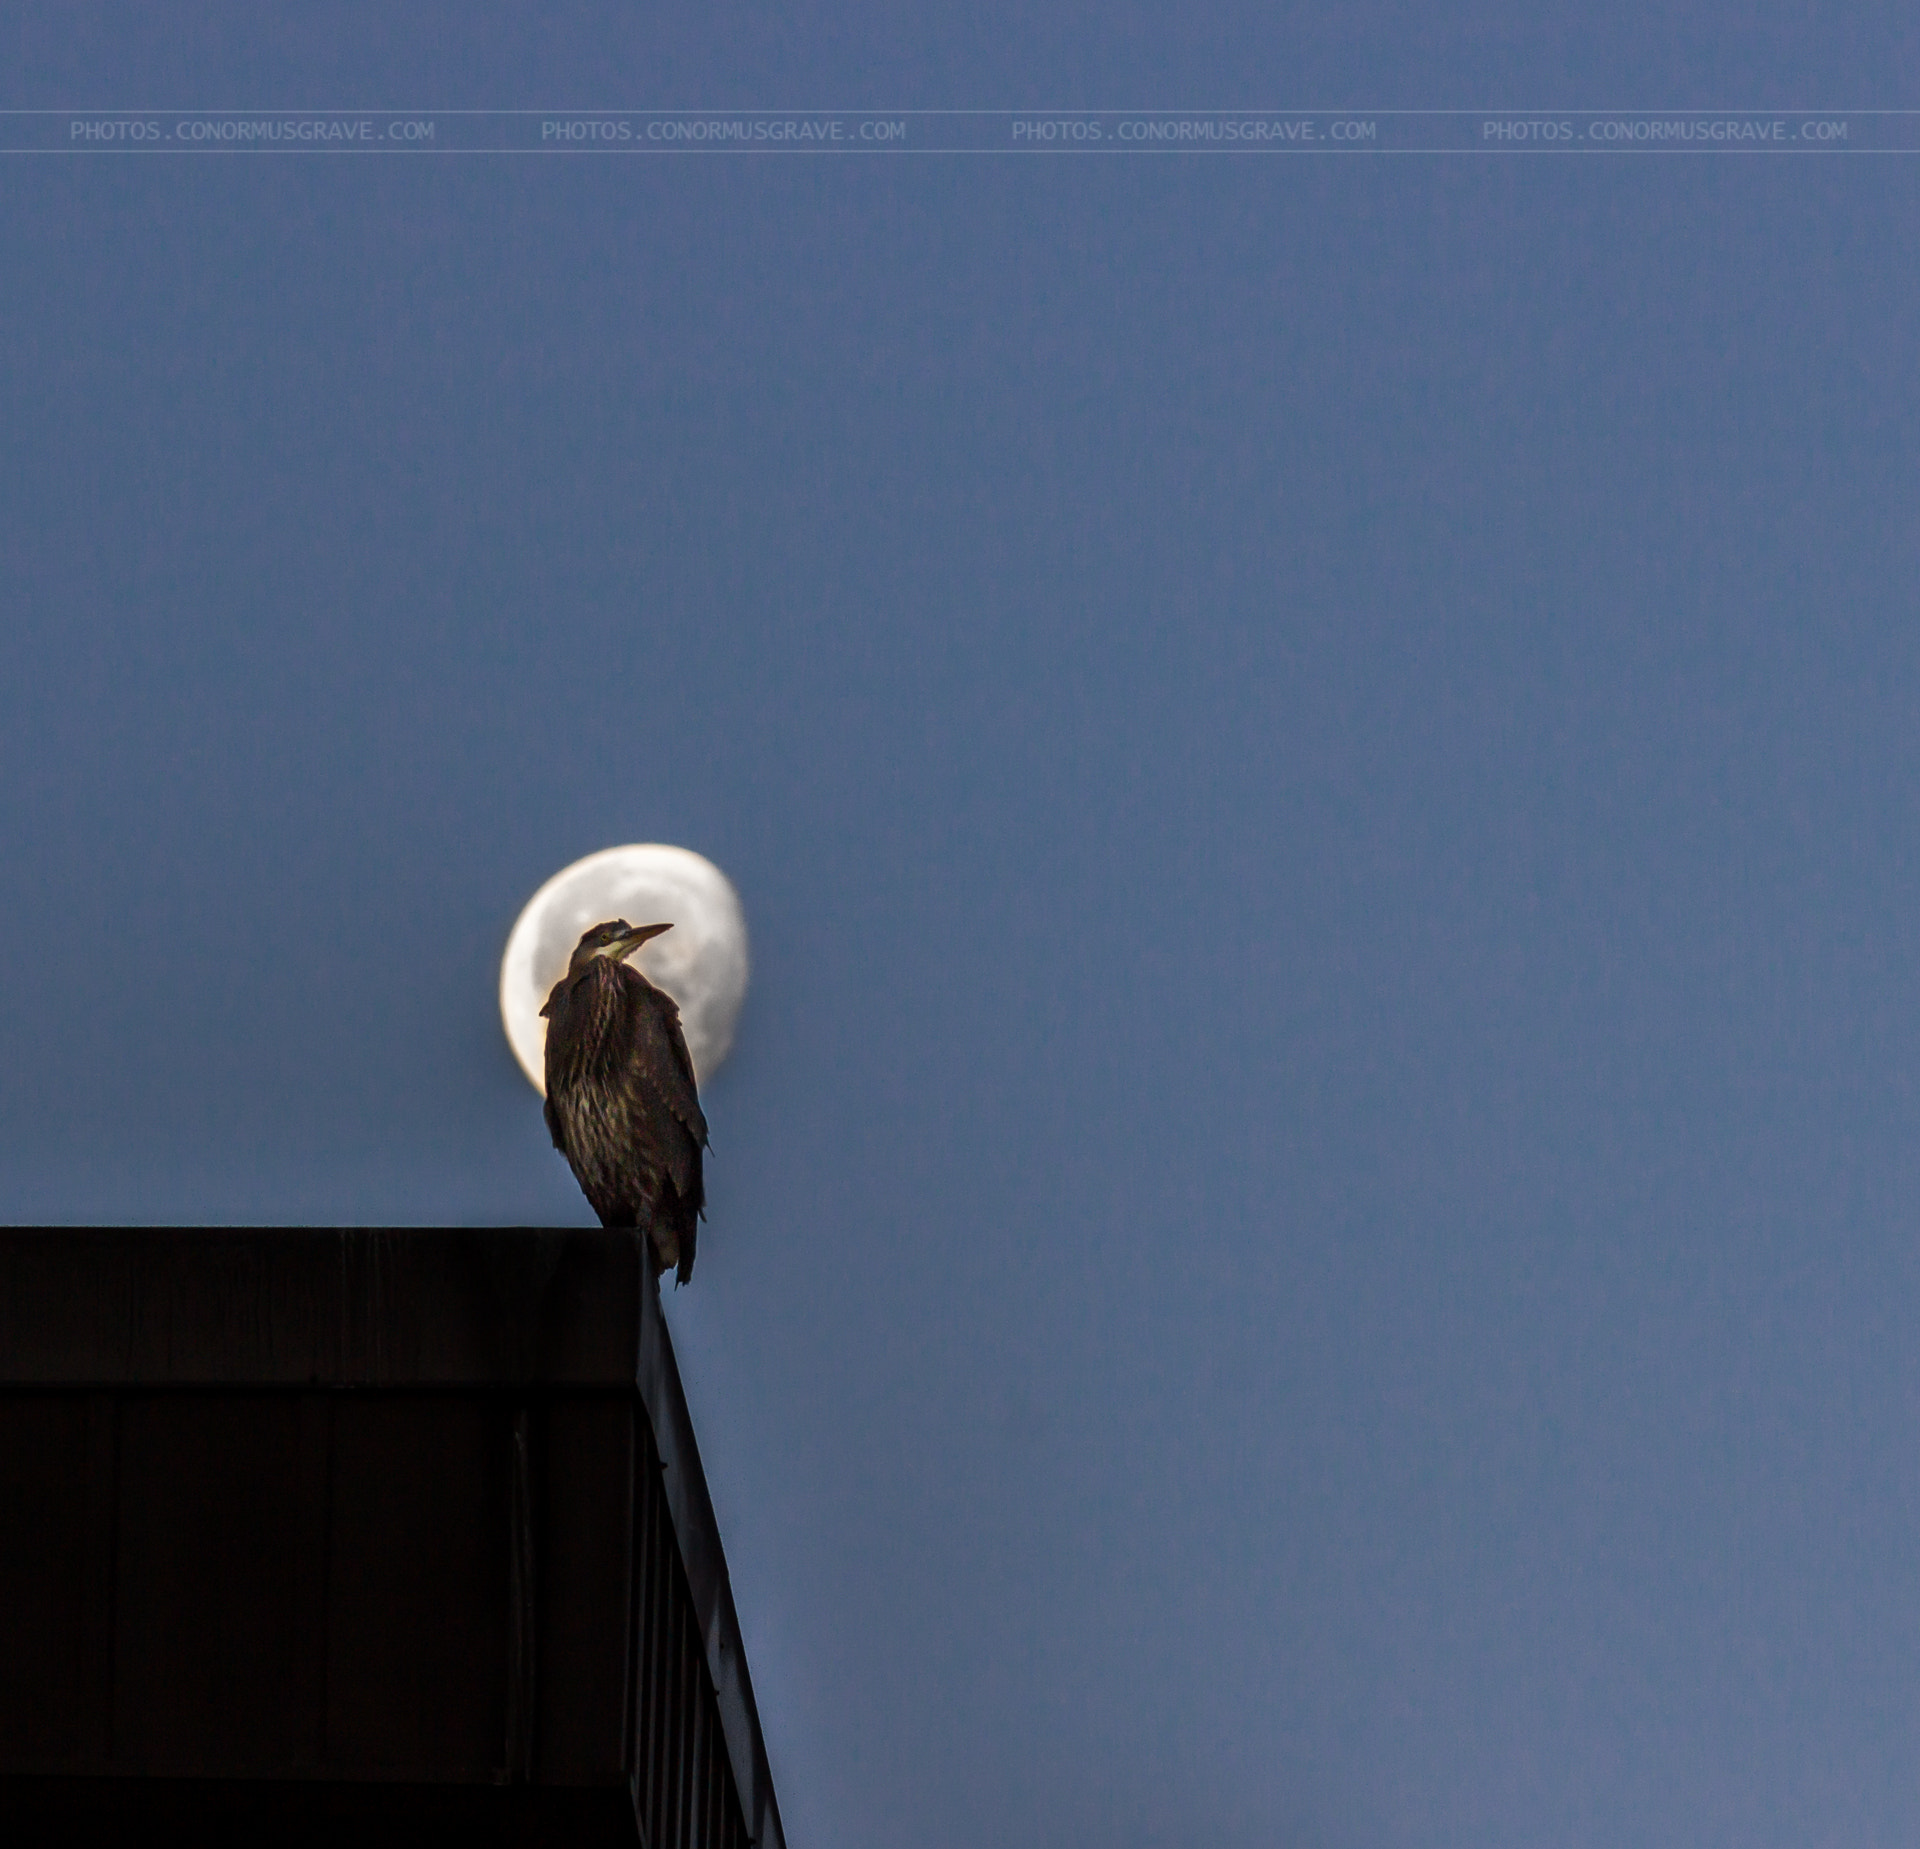 Photograph Great Blue Heron and the Moon by Conor Musgrave on 500px